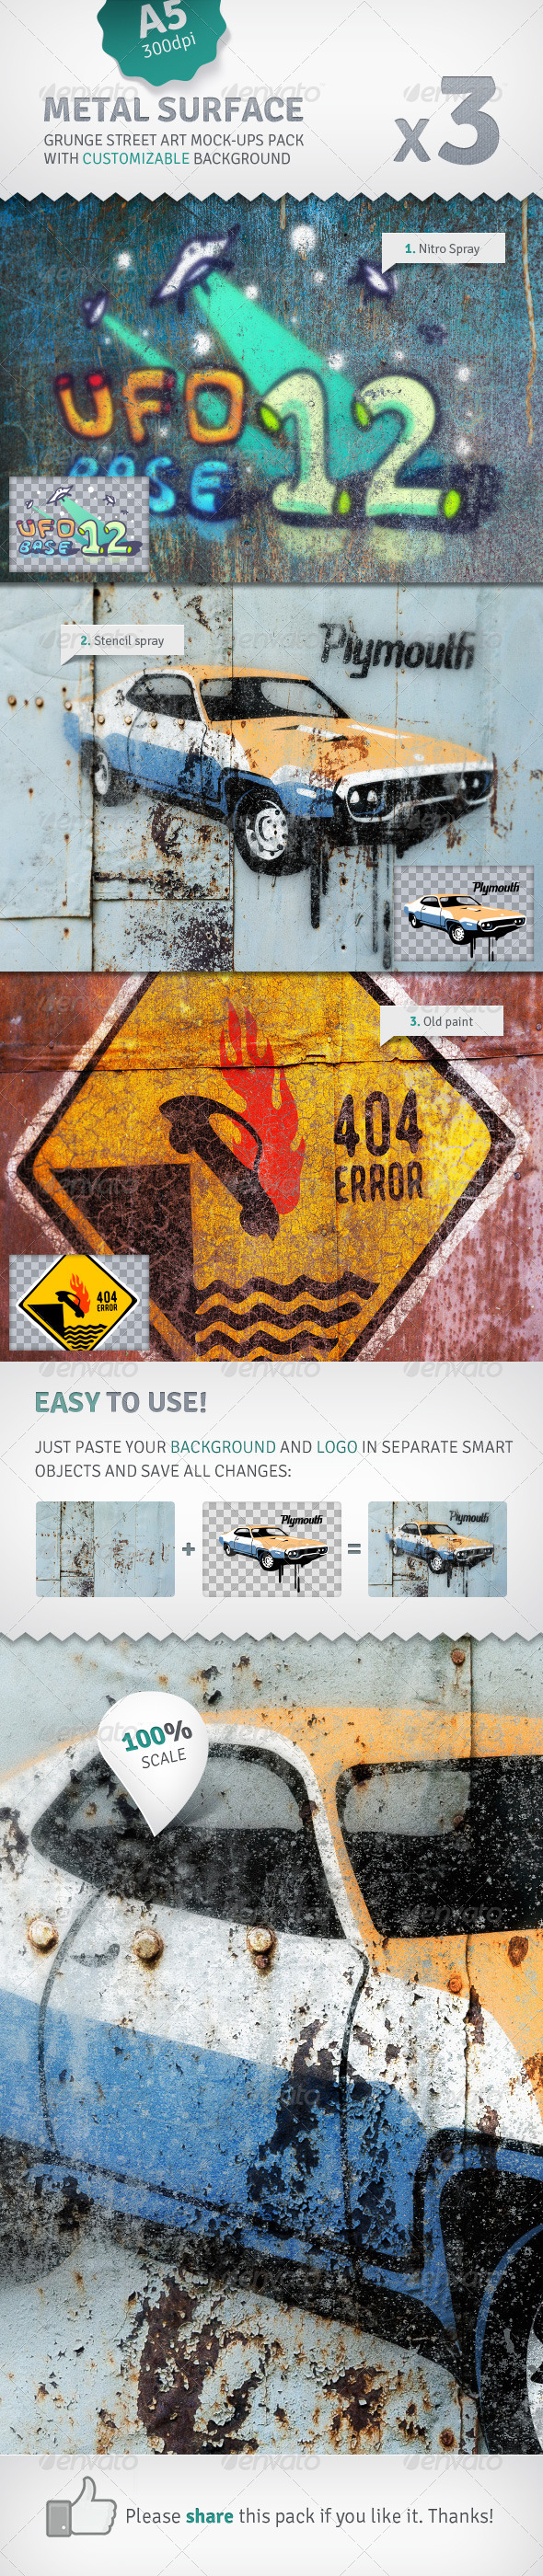 GraphicRiver Metal Surface 3 Graffiti Street Art Mockups 2577209